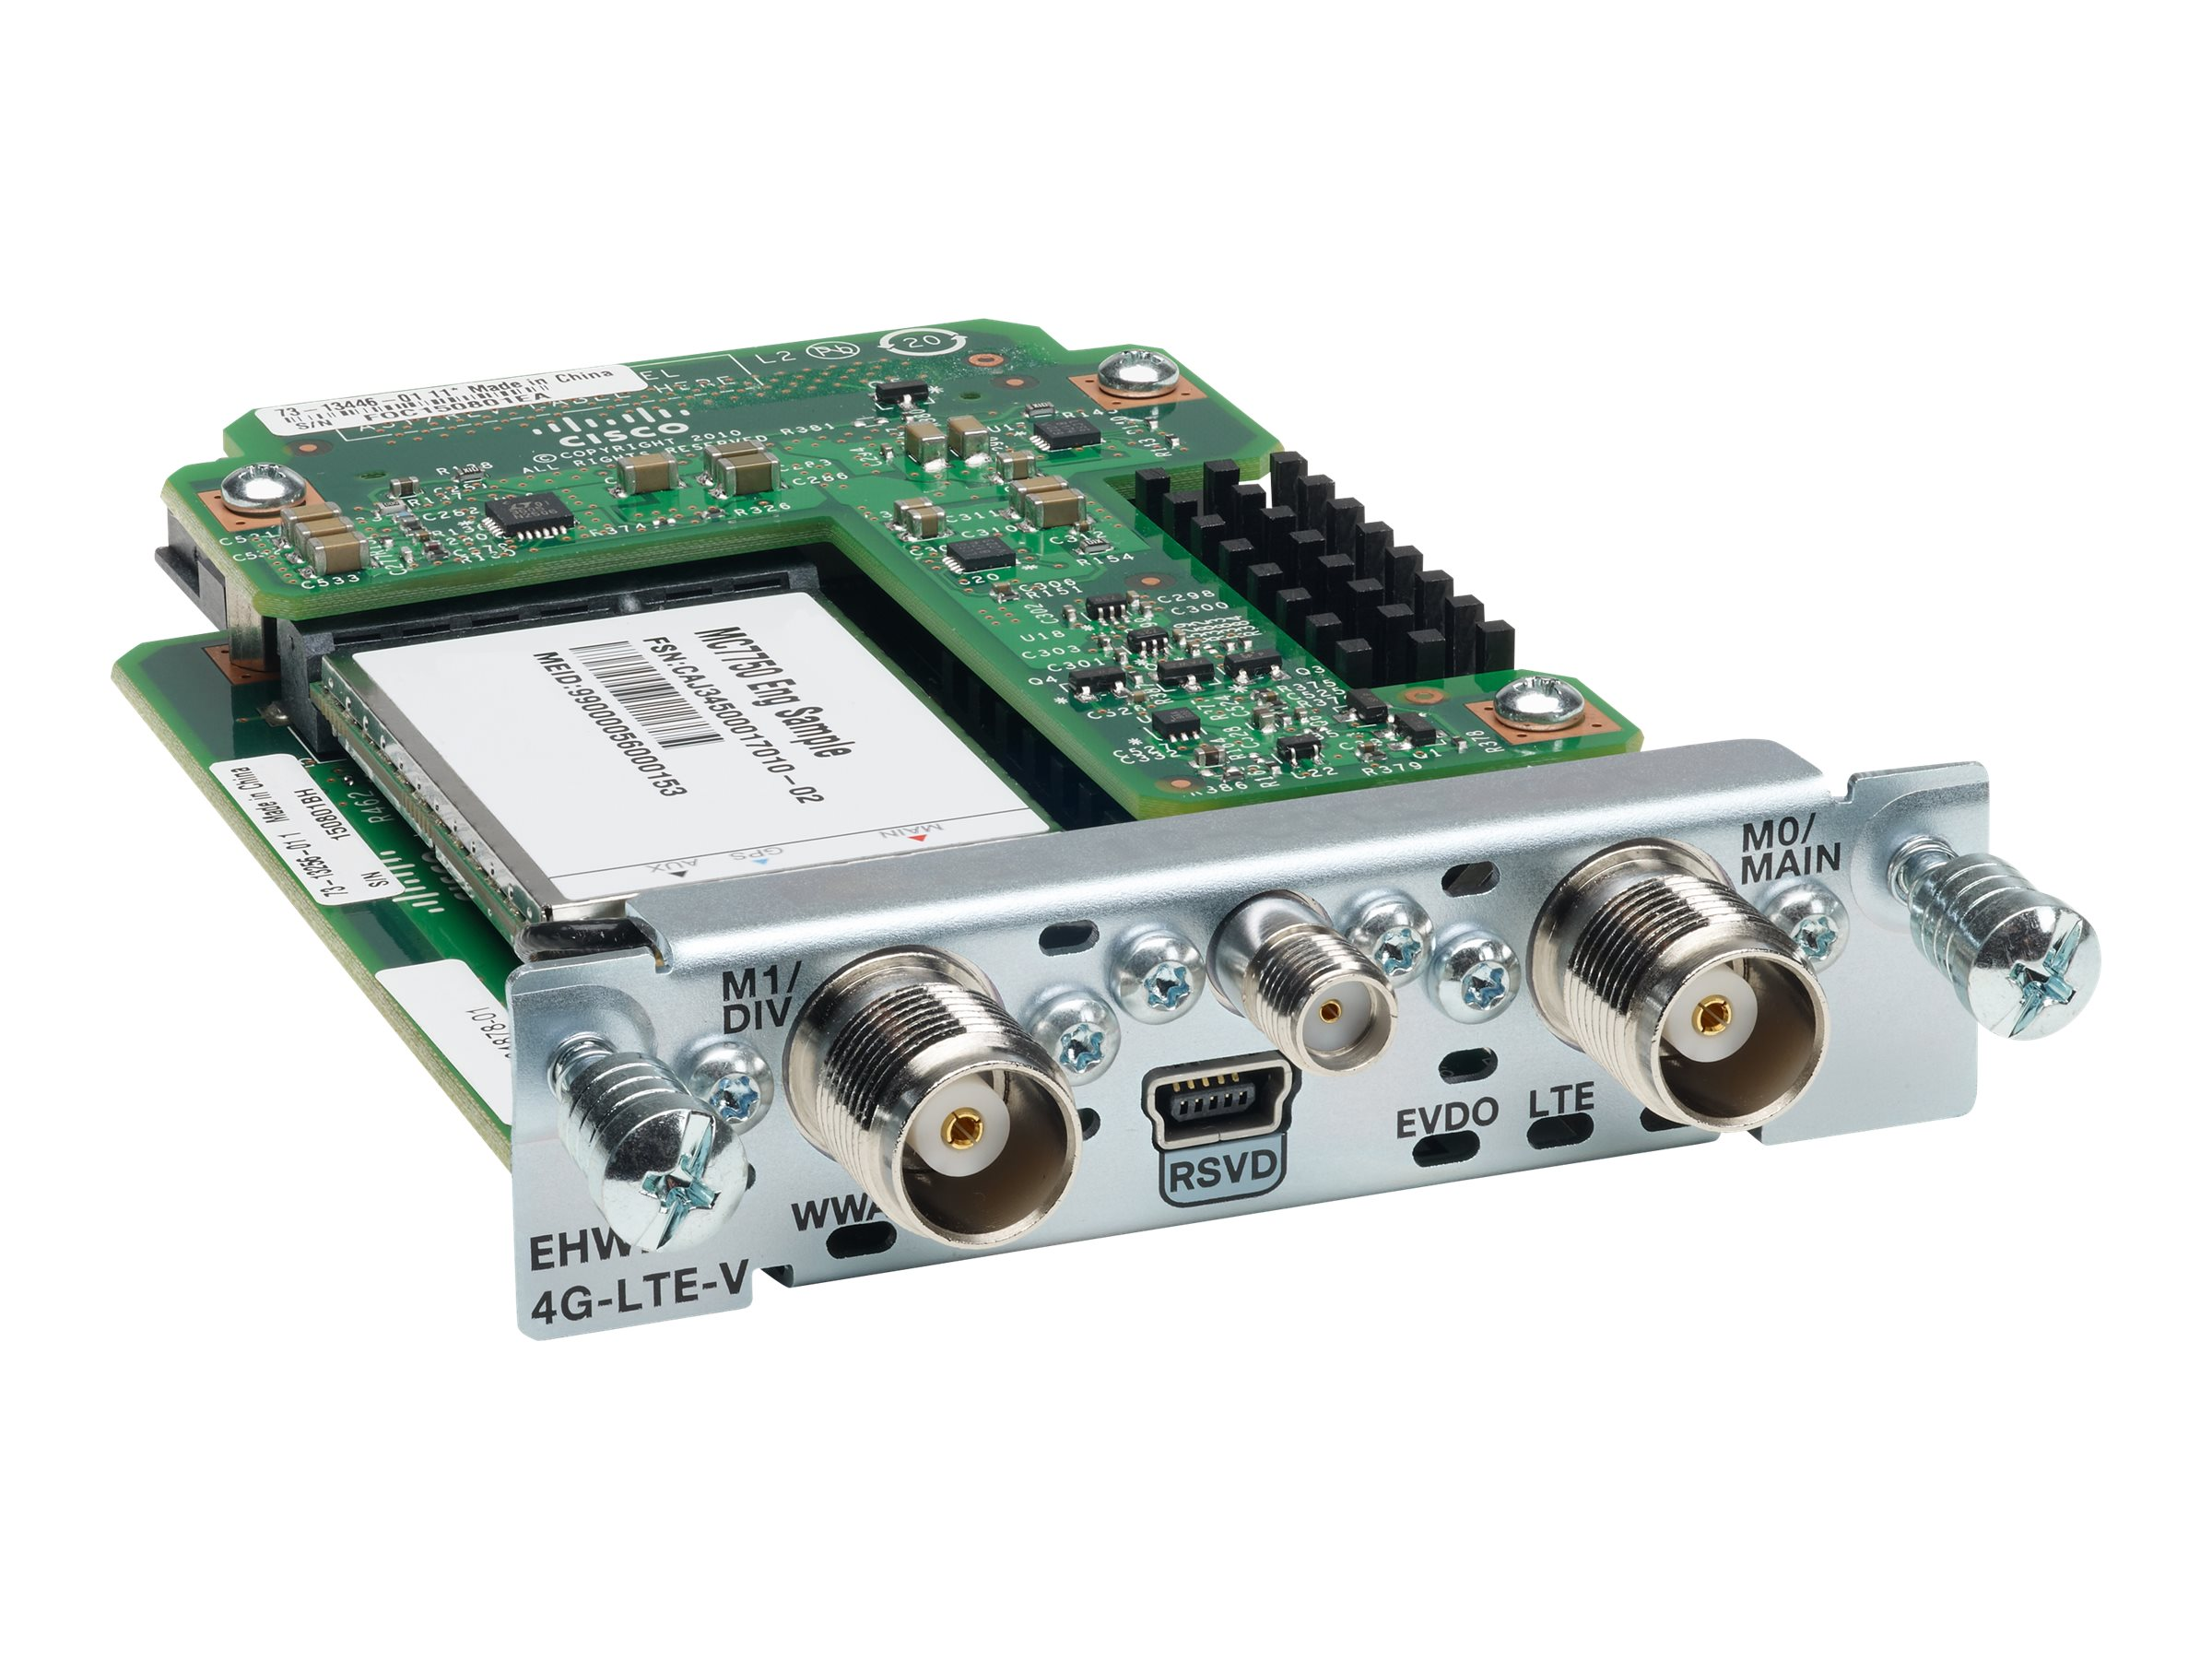 Cisco 4G LTE Enhanced High-speed WAN Interface Card 800 900 1800 2100MHZ (Australia)